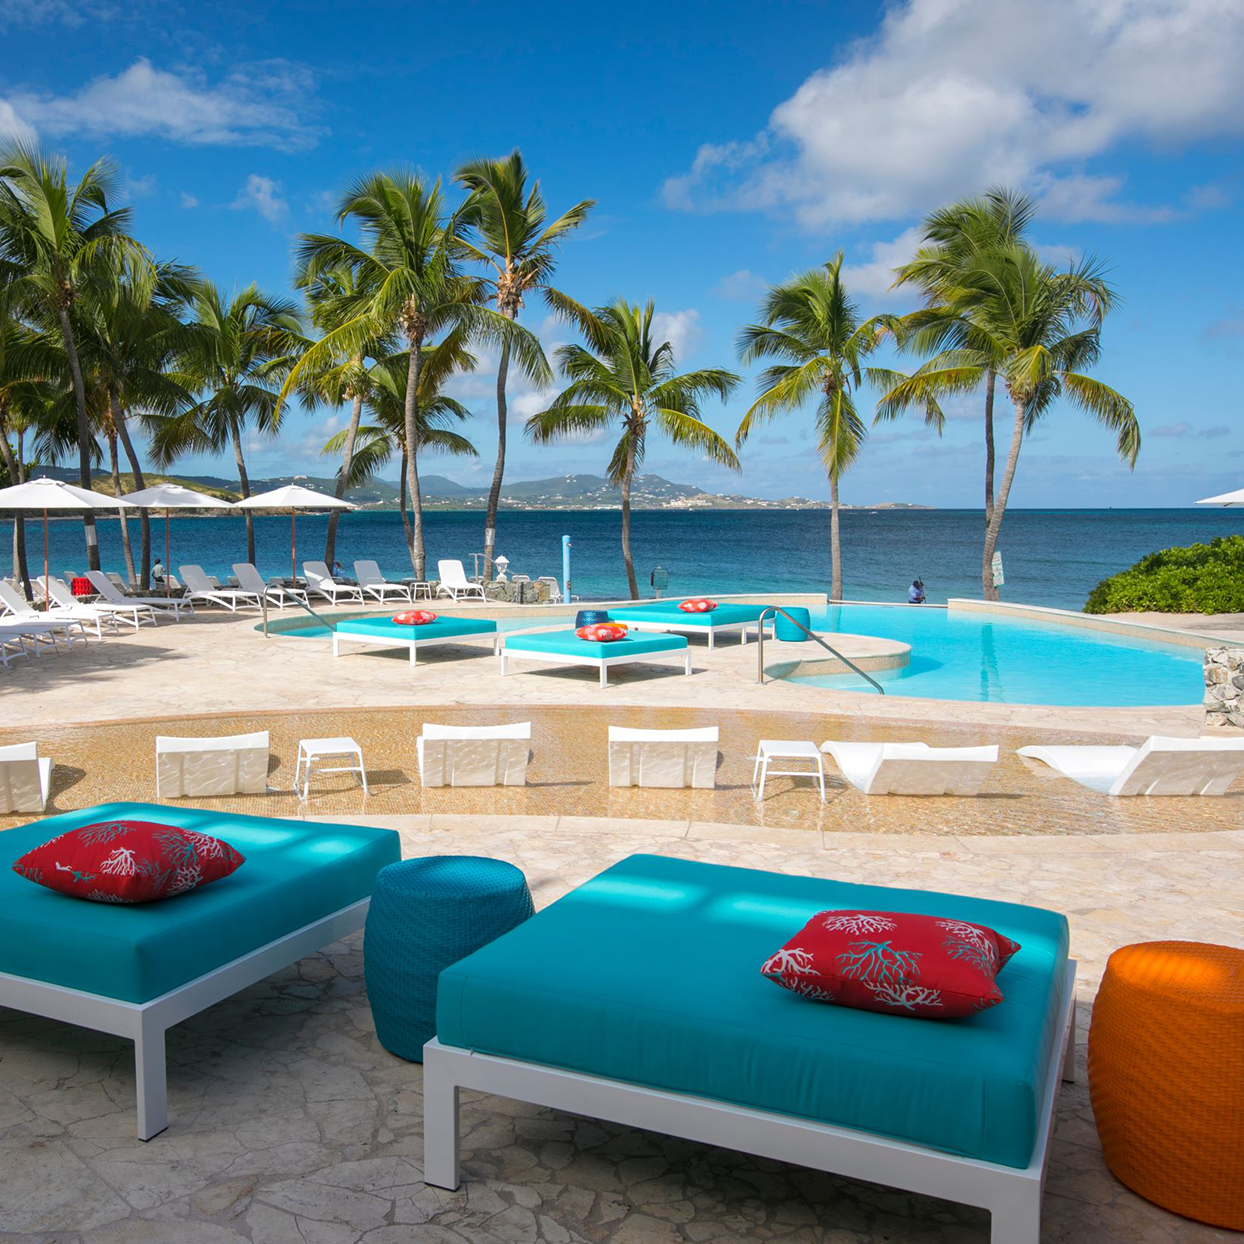 Family Getaway to St. Croix Sweepstakes